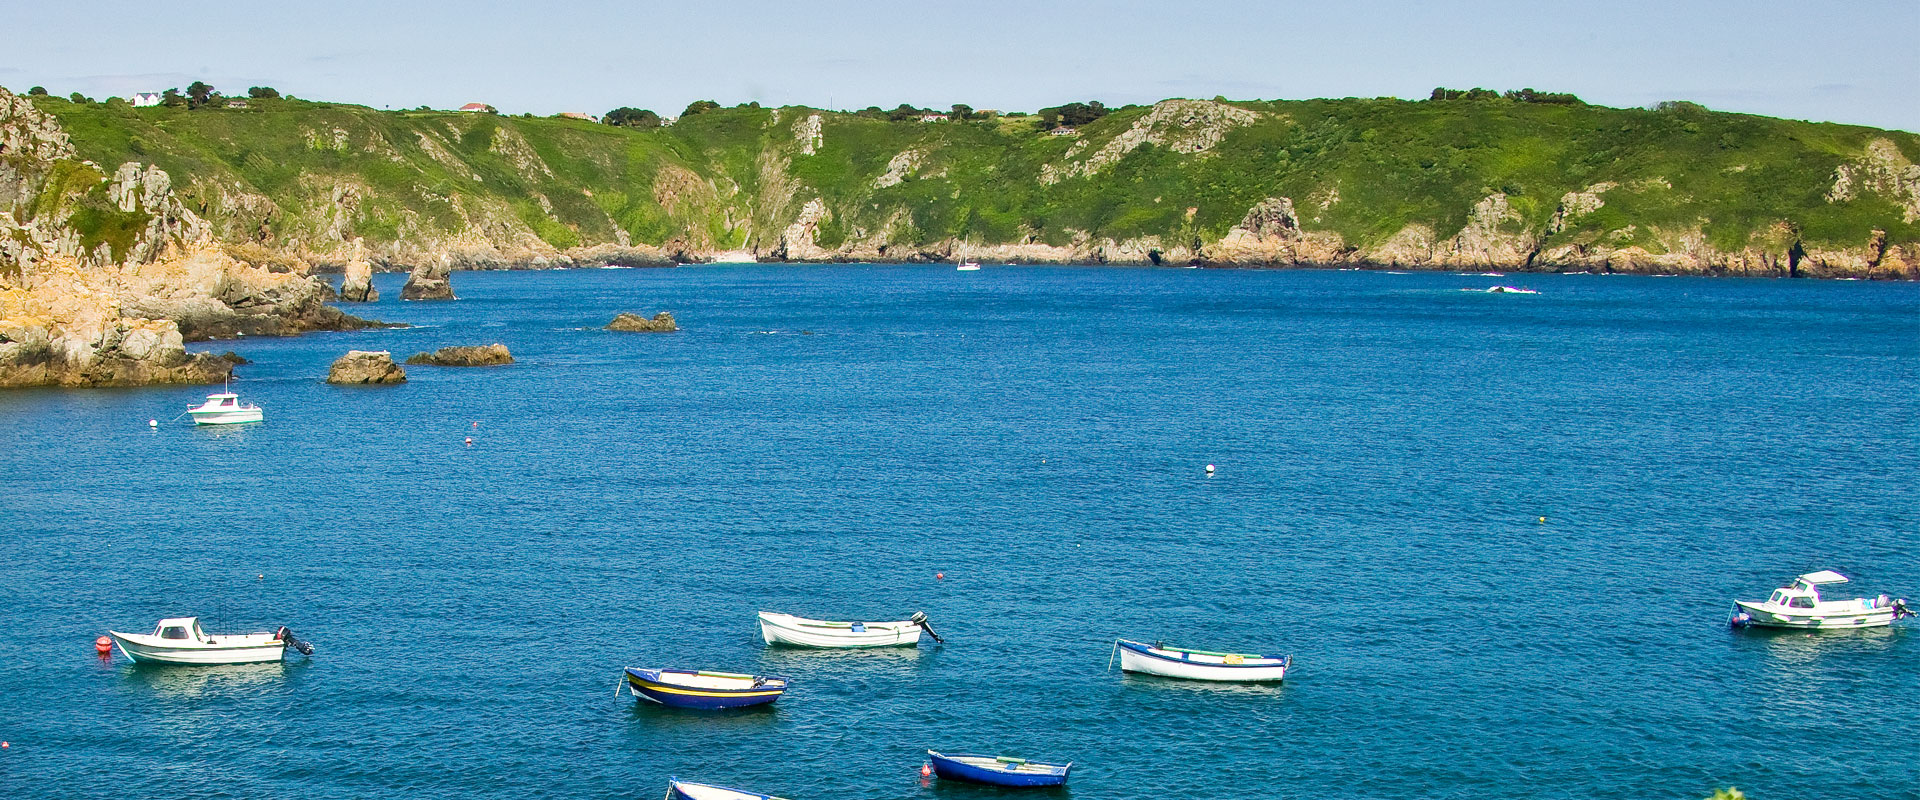 South coast - Images courtesy of VisitGuernsey